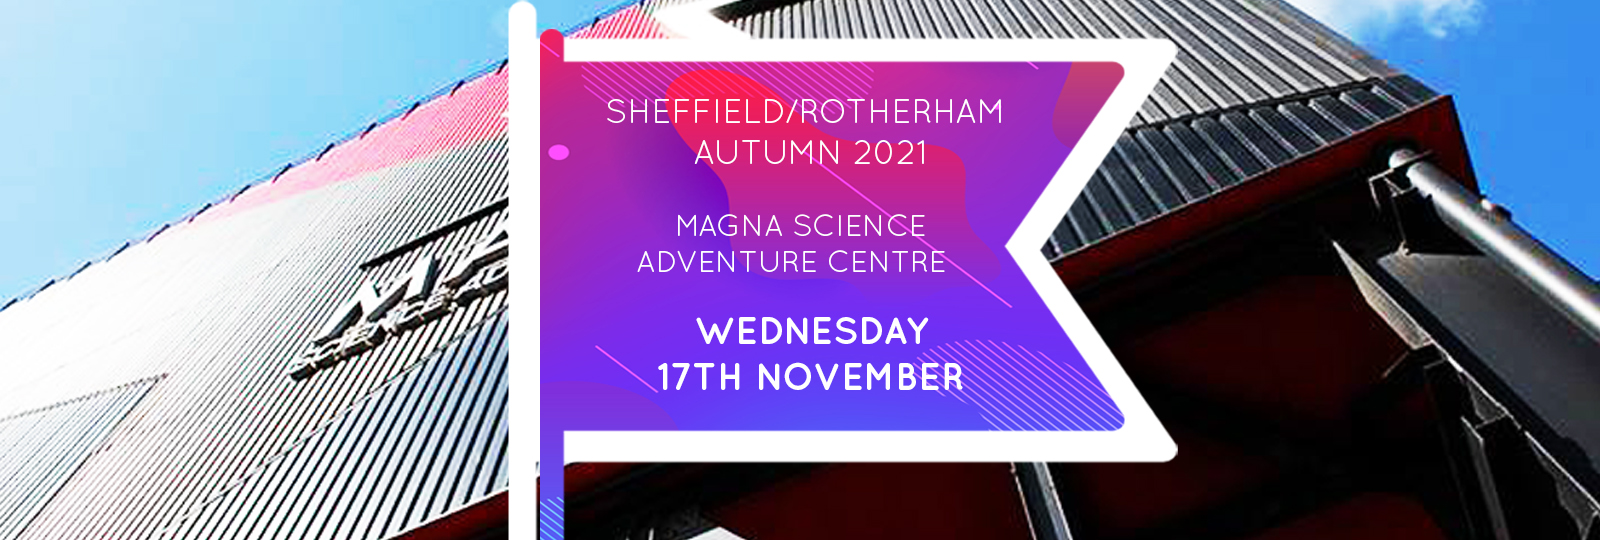 Sheffield/Rotherham Autumn 2021 Fair